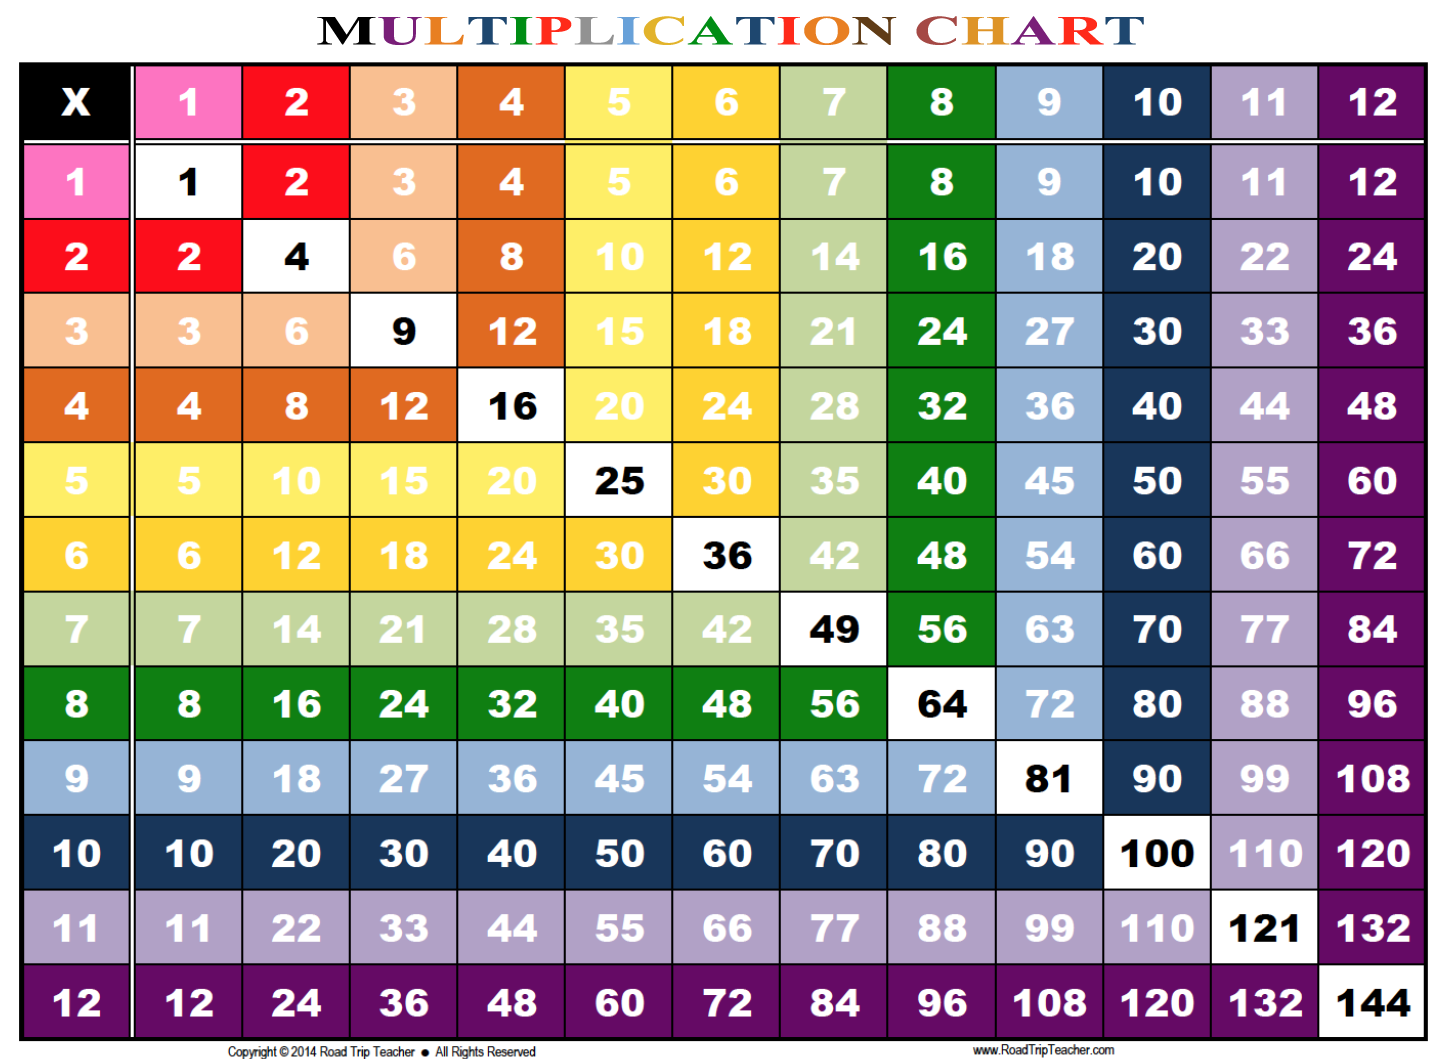 Time table chart 1 12 search results calendar 2015 for Multiplication table to 99